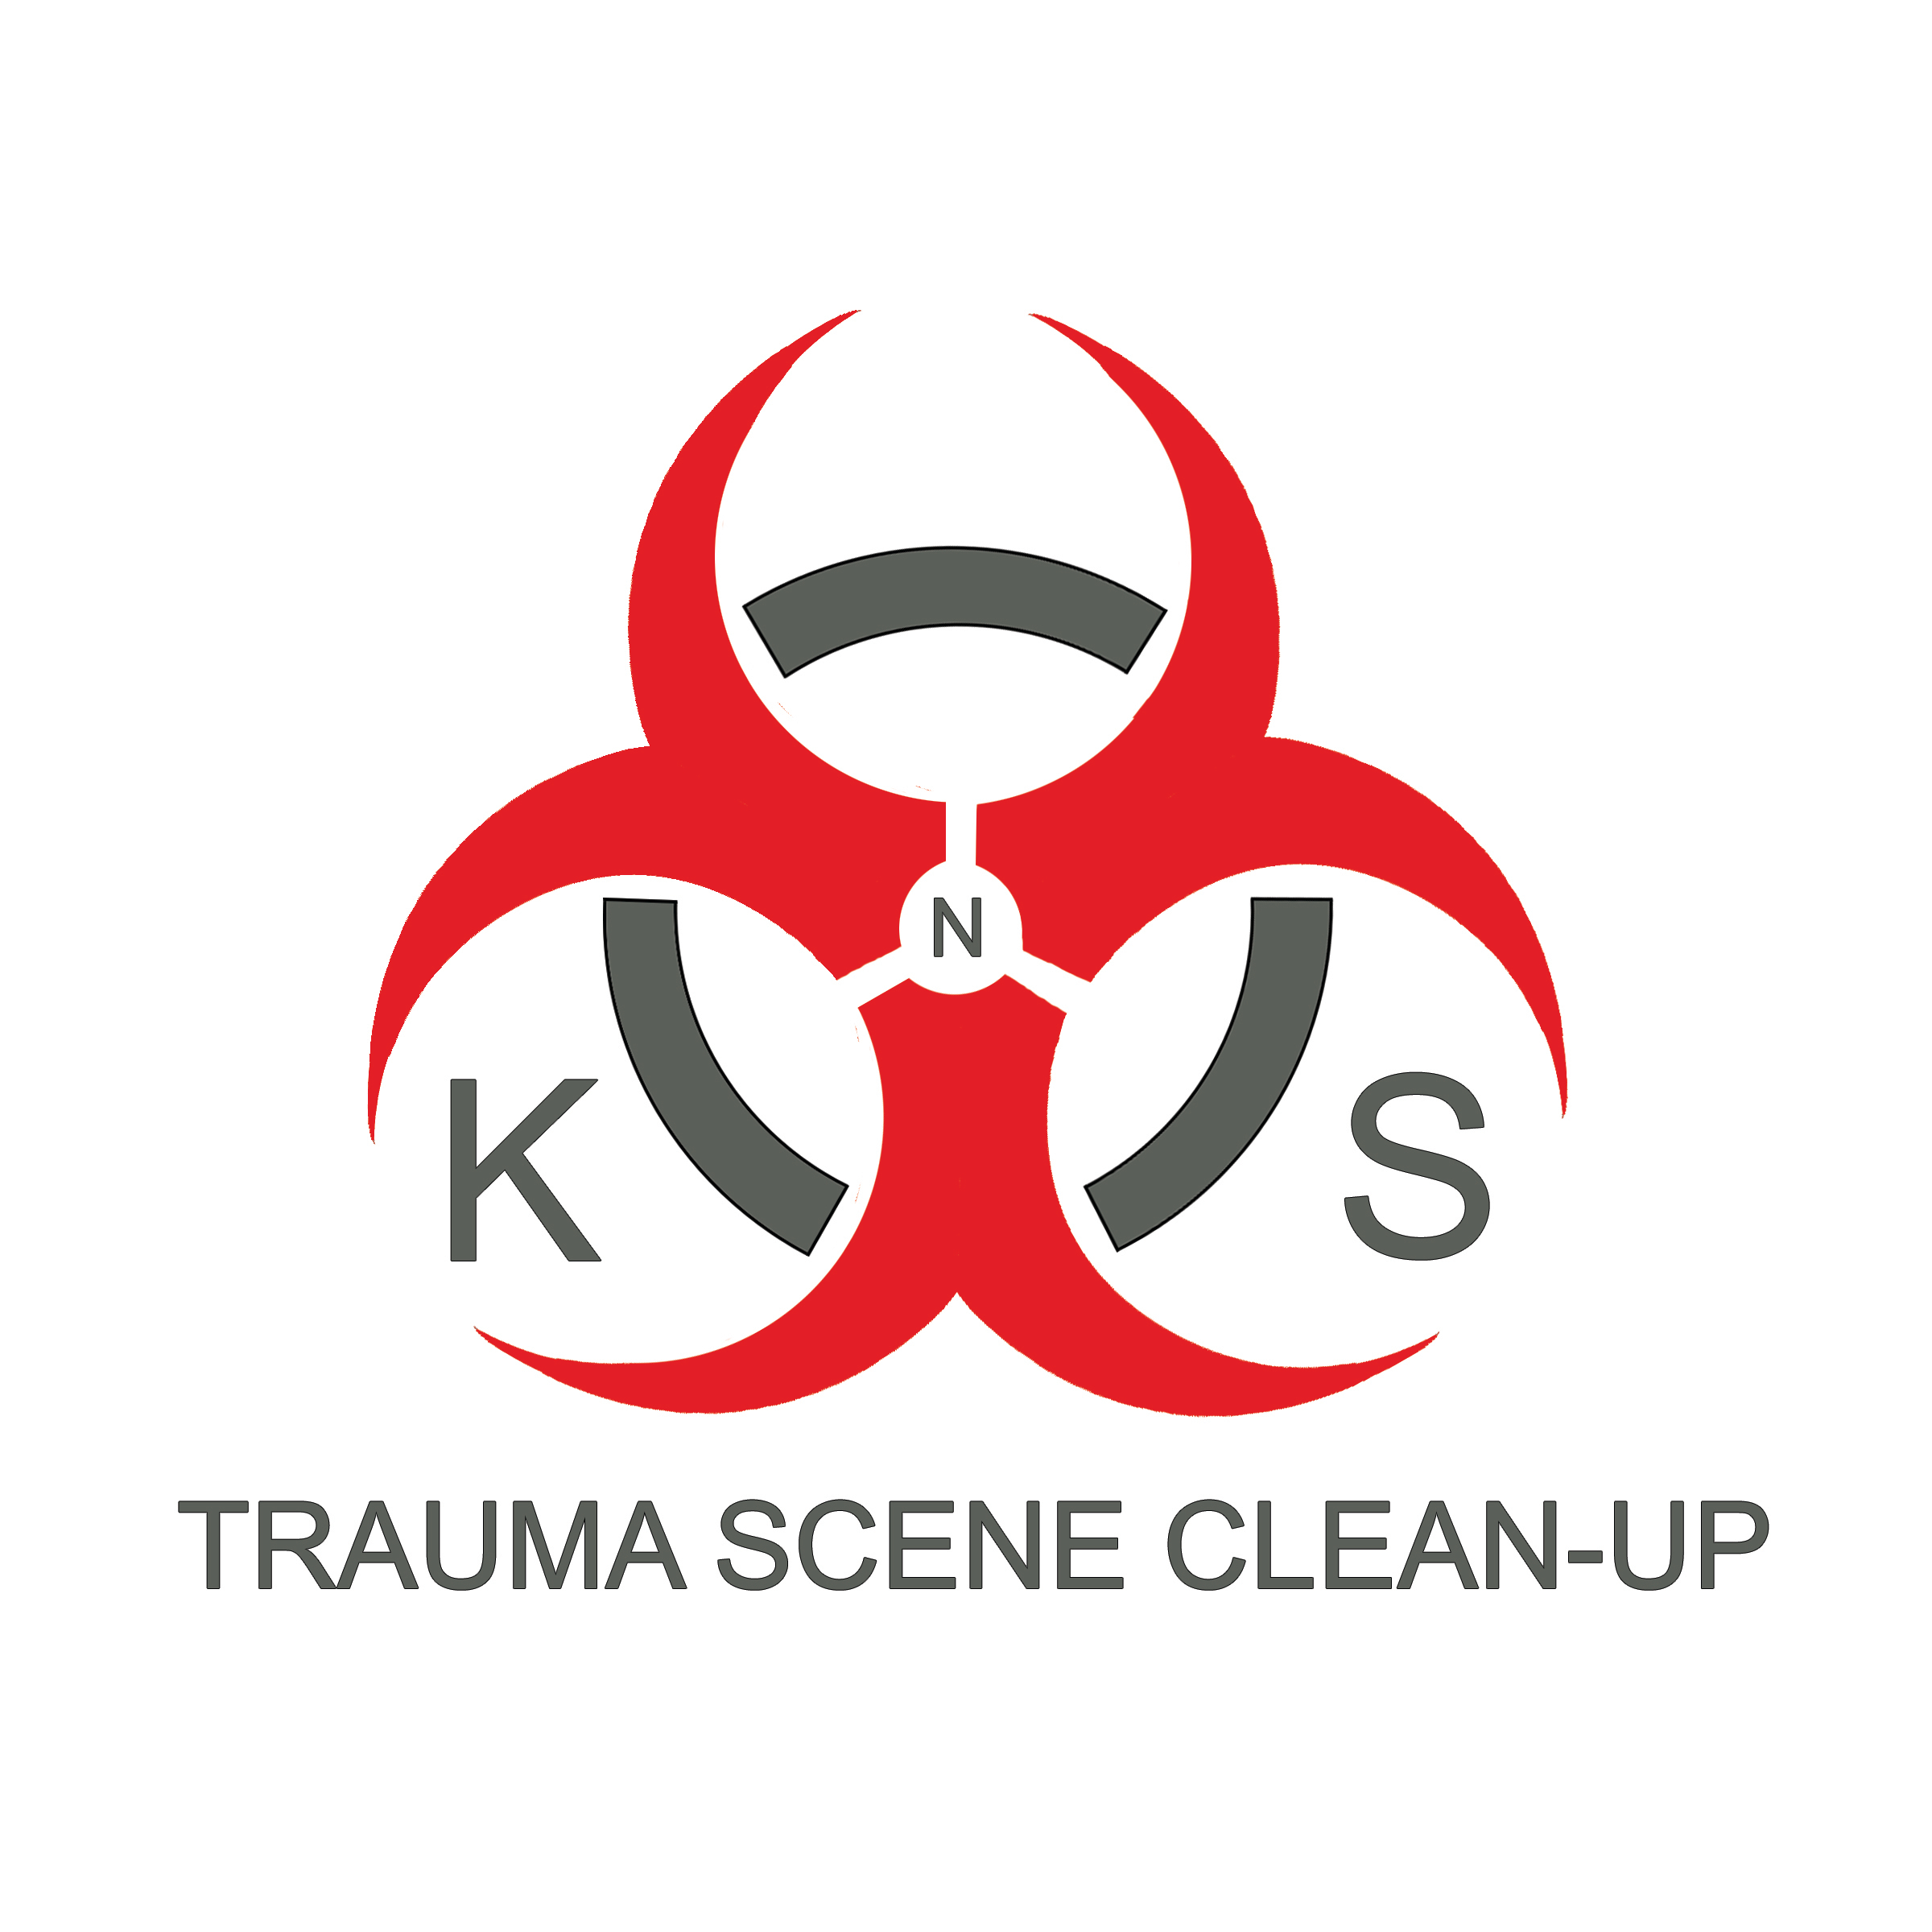 image of K-N-S Trauma Scene Clean Up